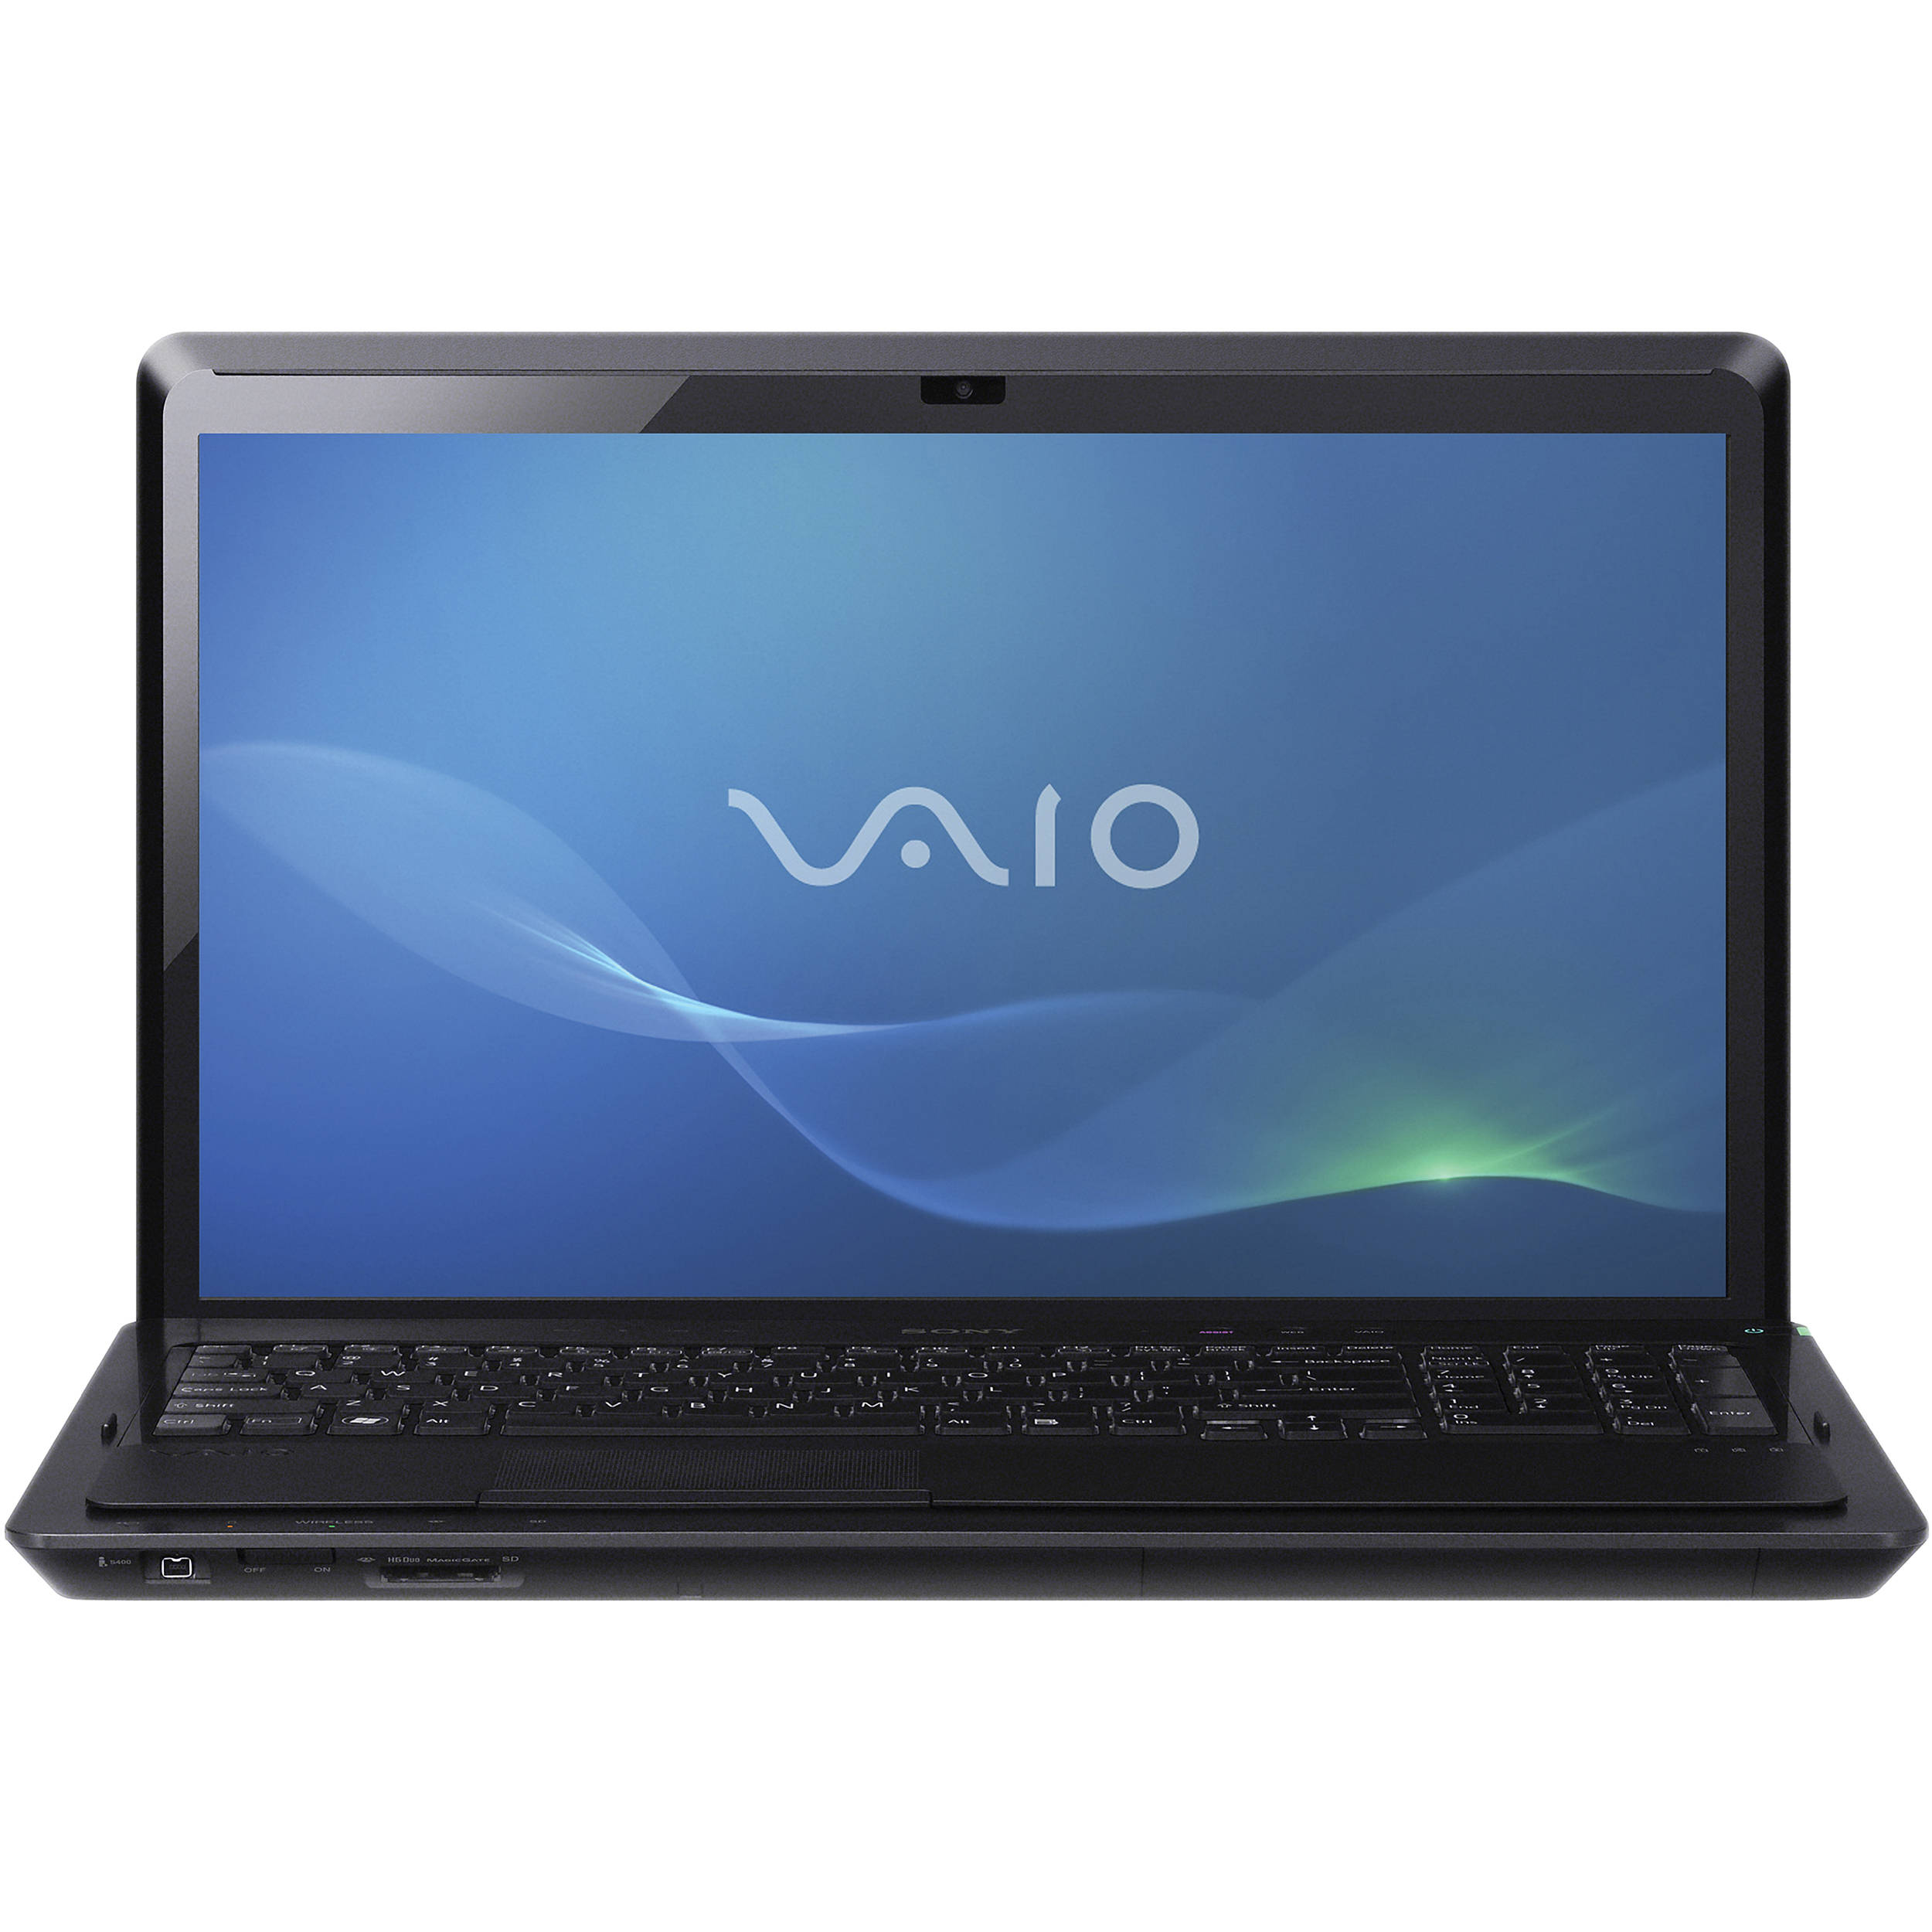 Sony Vaio VPCF221FX/B Renesas USB 3.0 Controller Driver Download